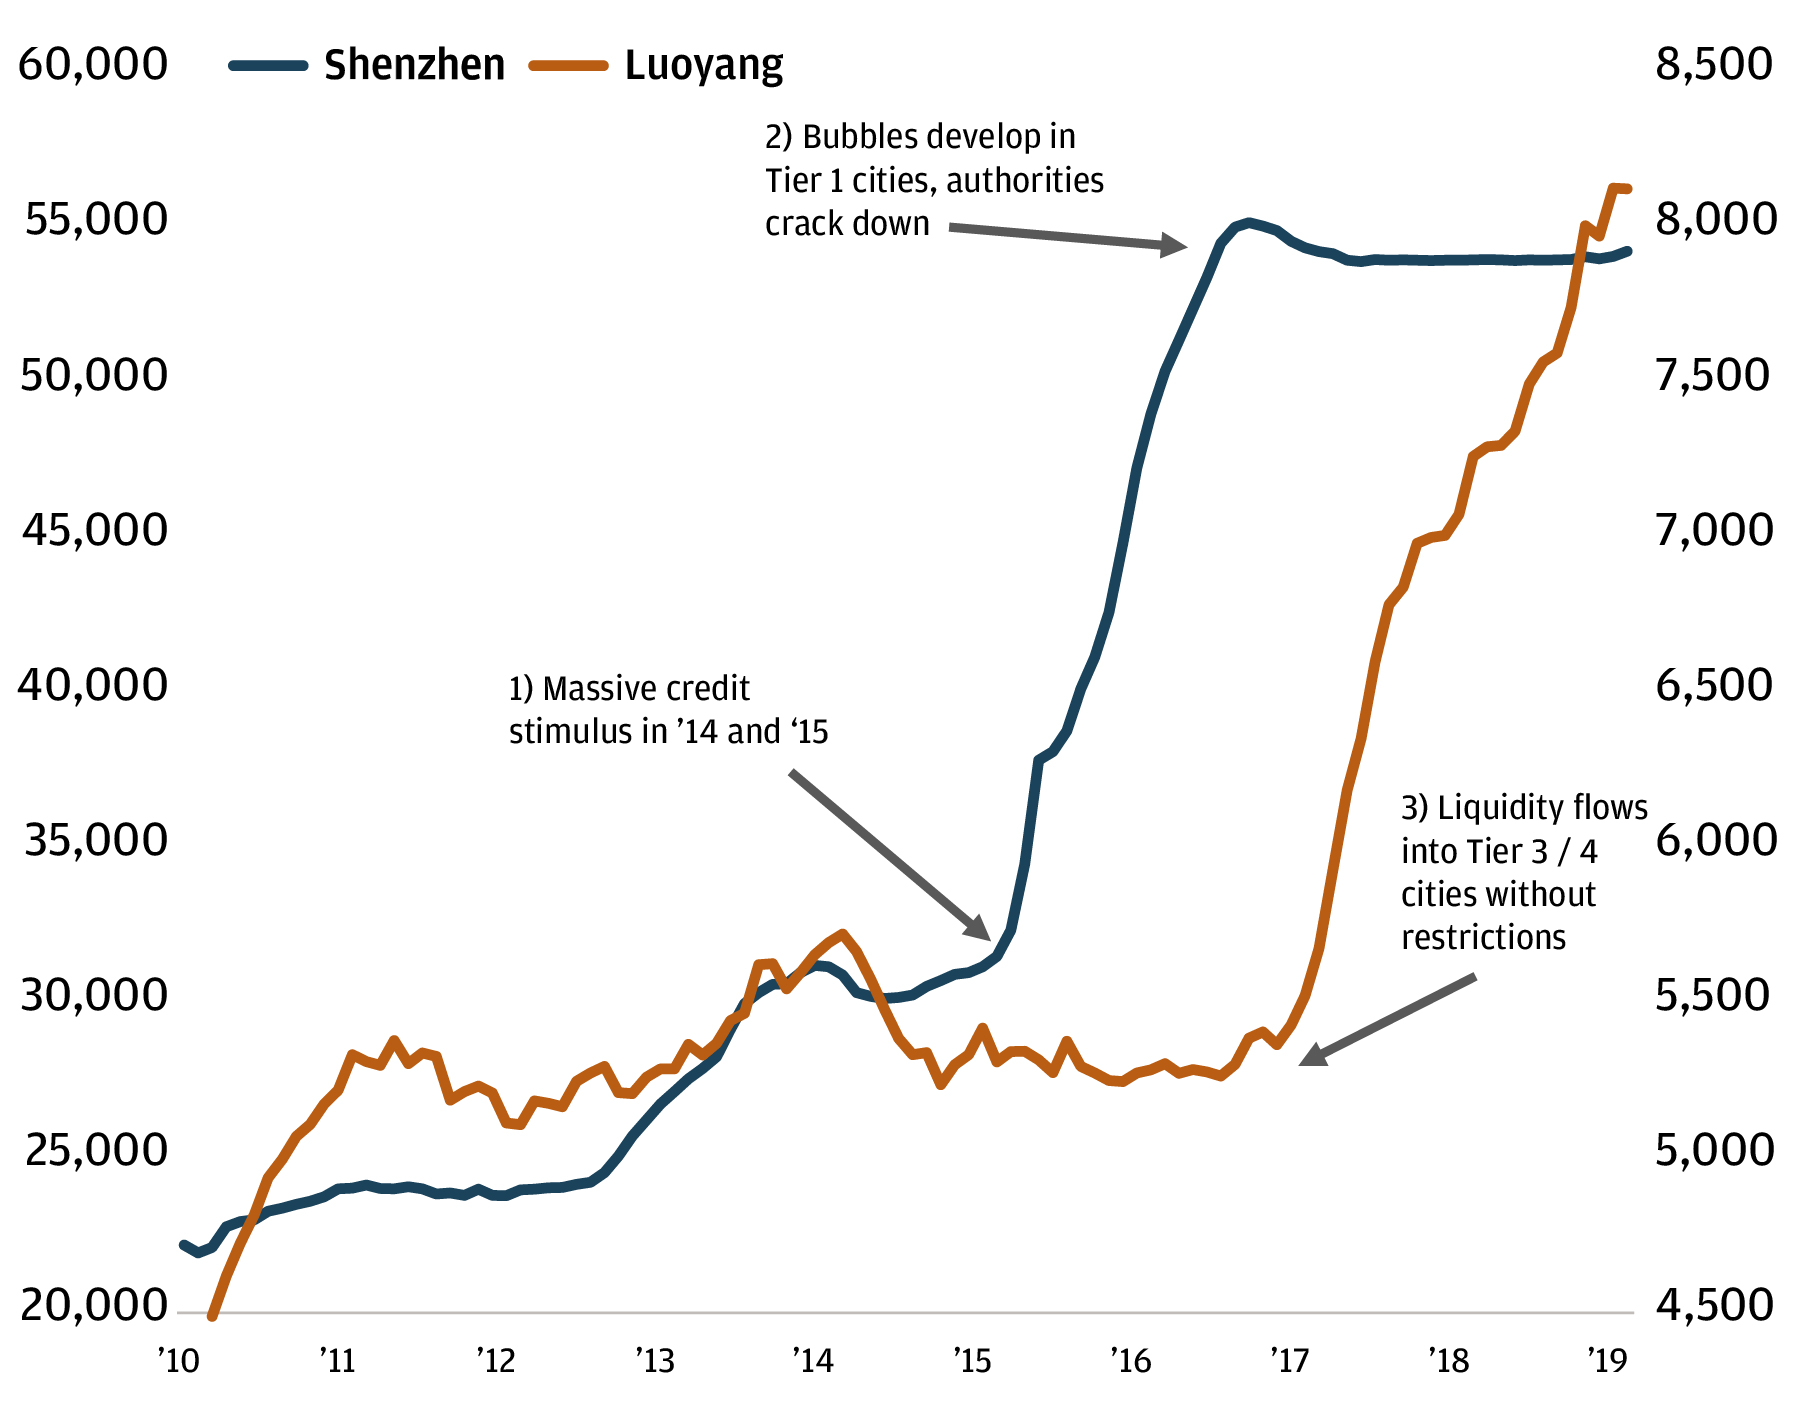 A line chart showing the property price in Shenzhen and Luoyang from 2010 to 2019.